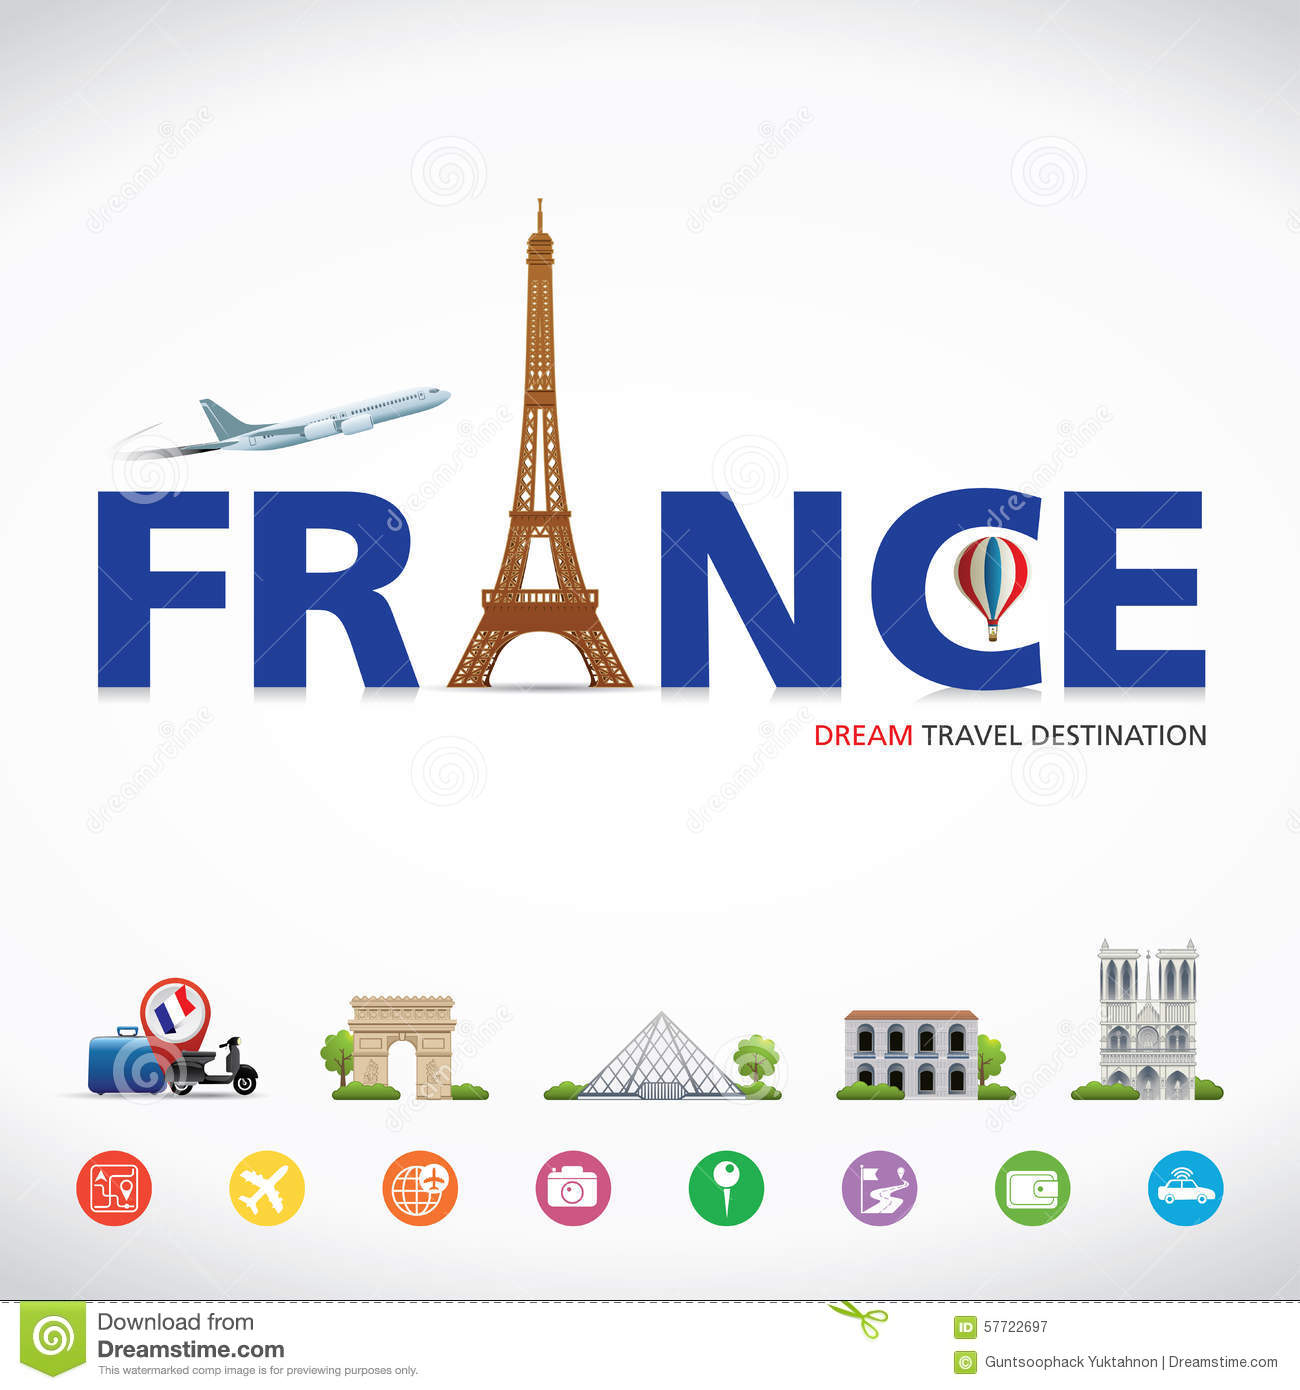 France Travel Dreams Destination Symbols Of